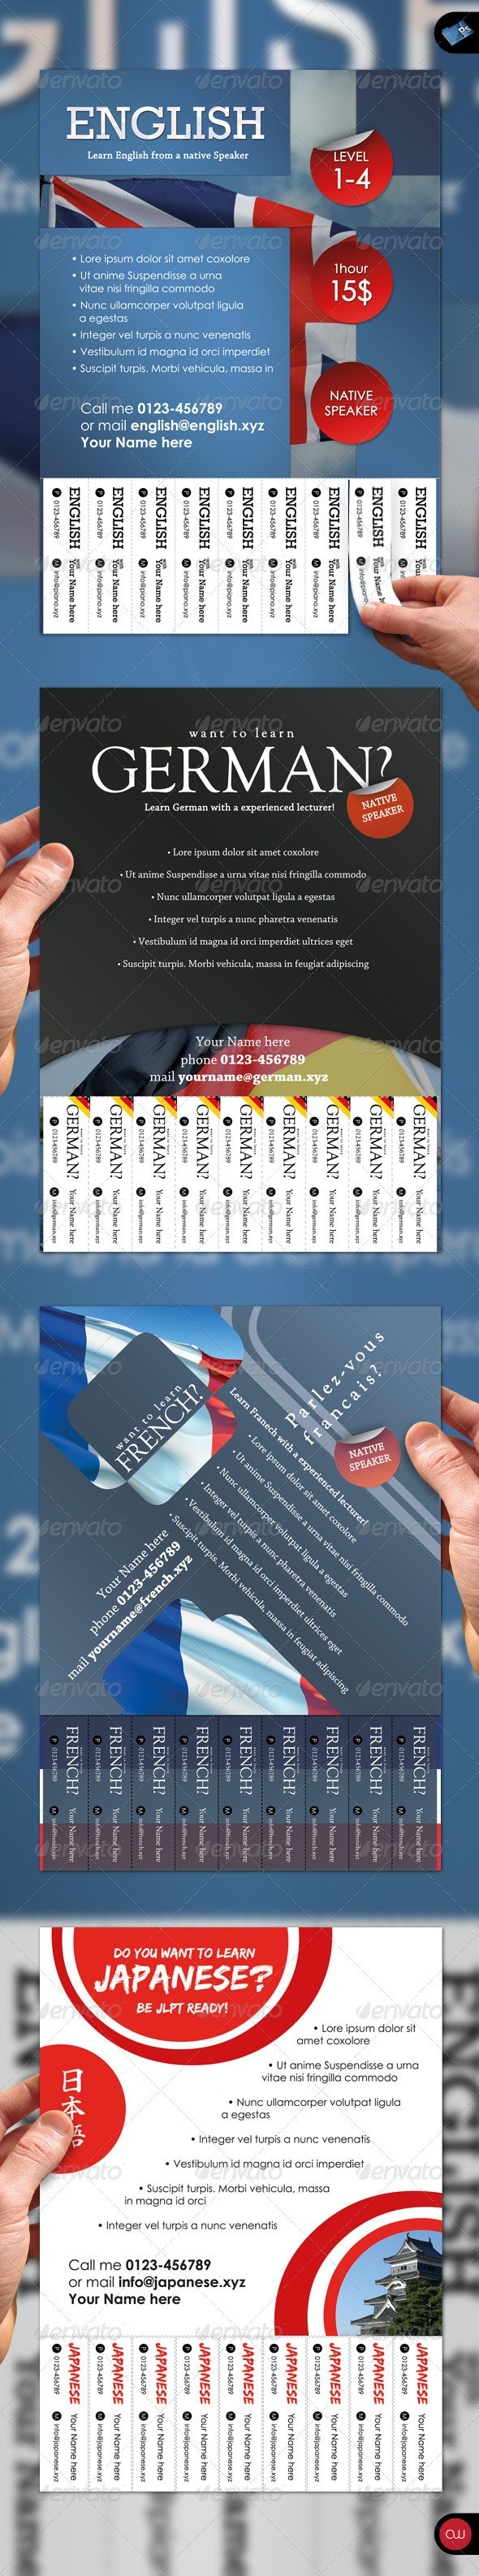 Tear-Off Flyer - Vol.2 - Languages - Commerce Flyers